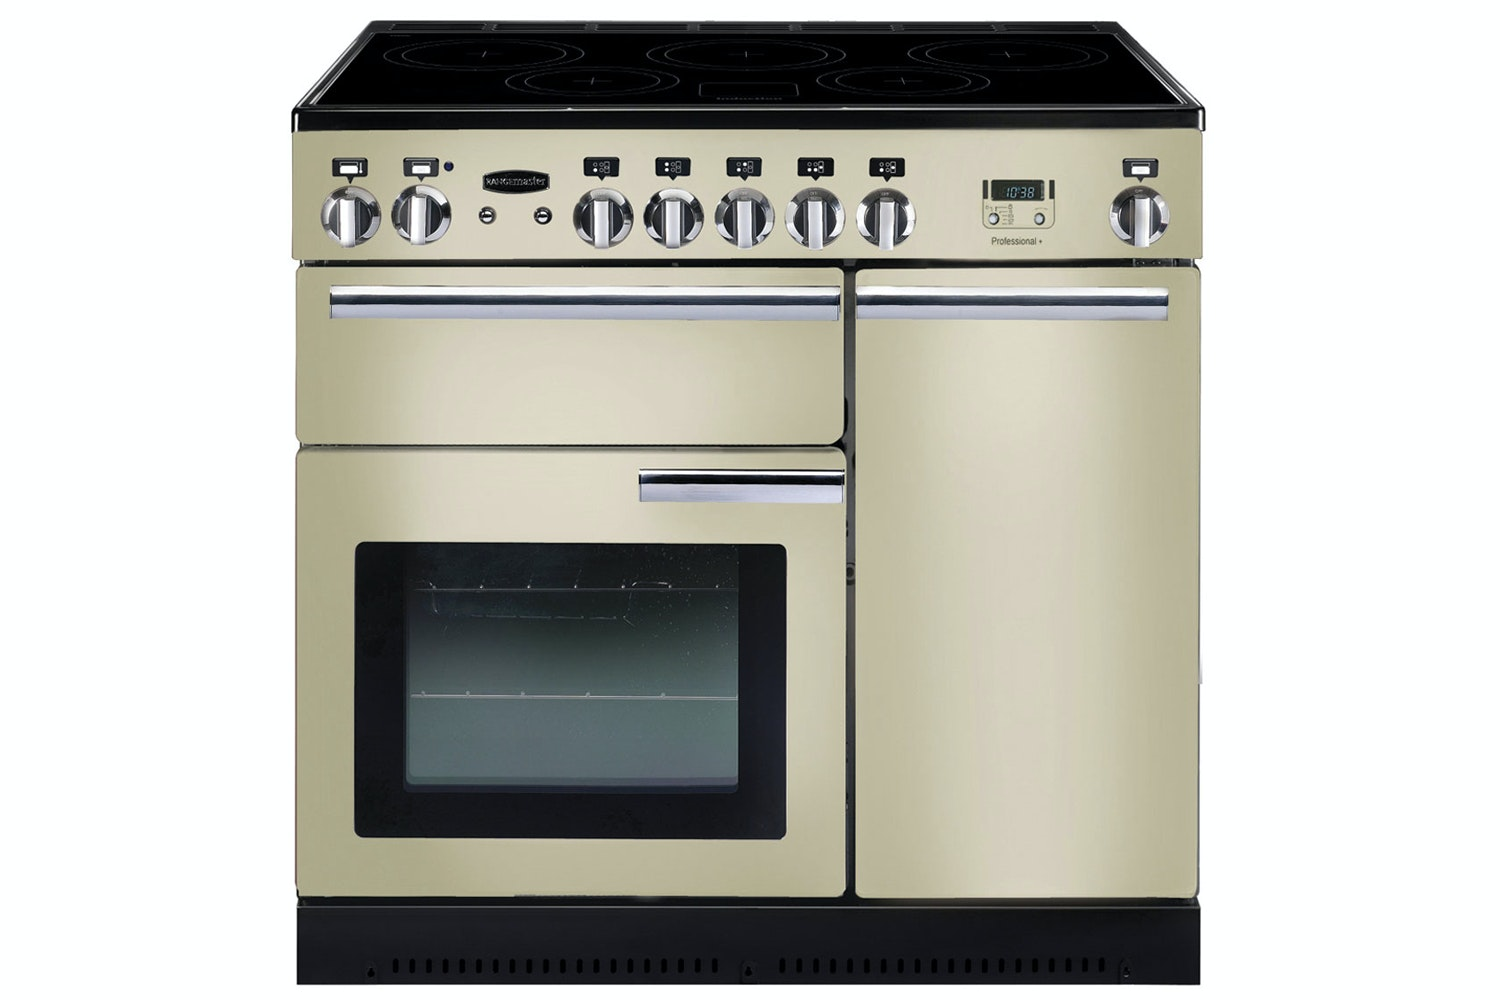 Rangemaster Professional Plus 90cm Electric Range Cooker | PROP90EICR/C | Cream